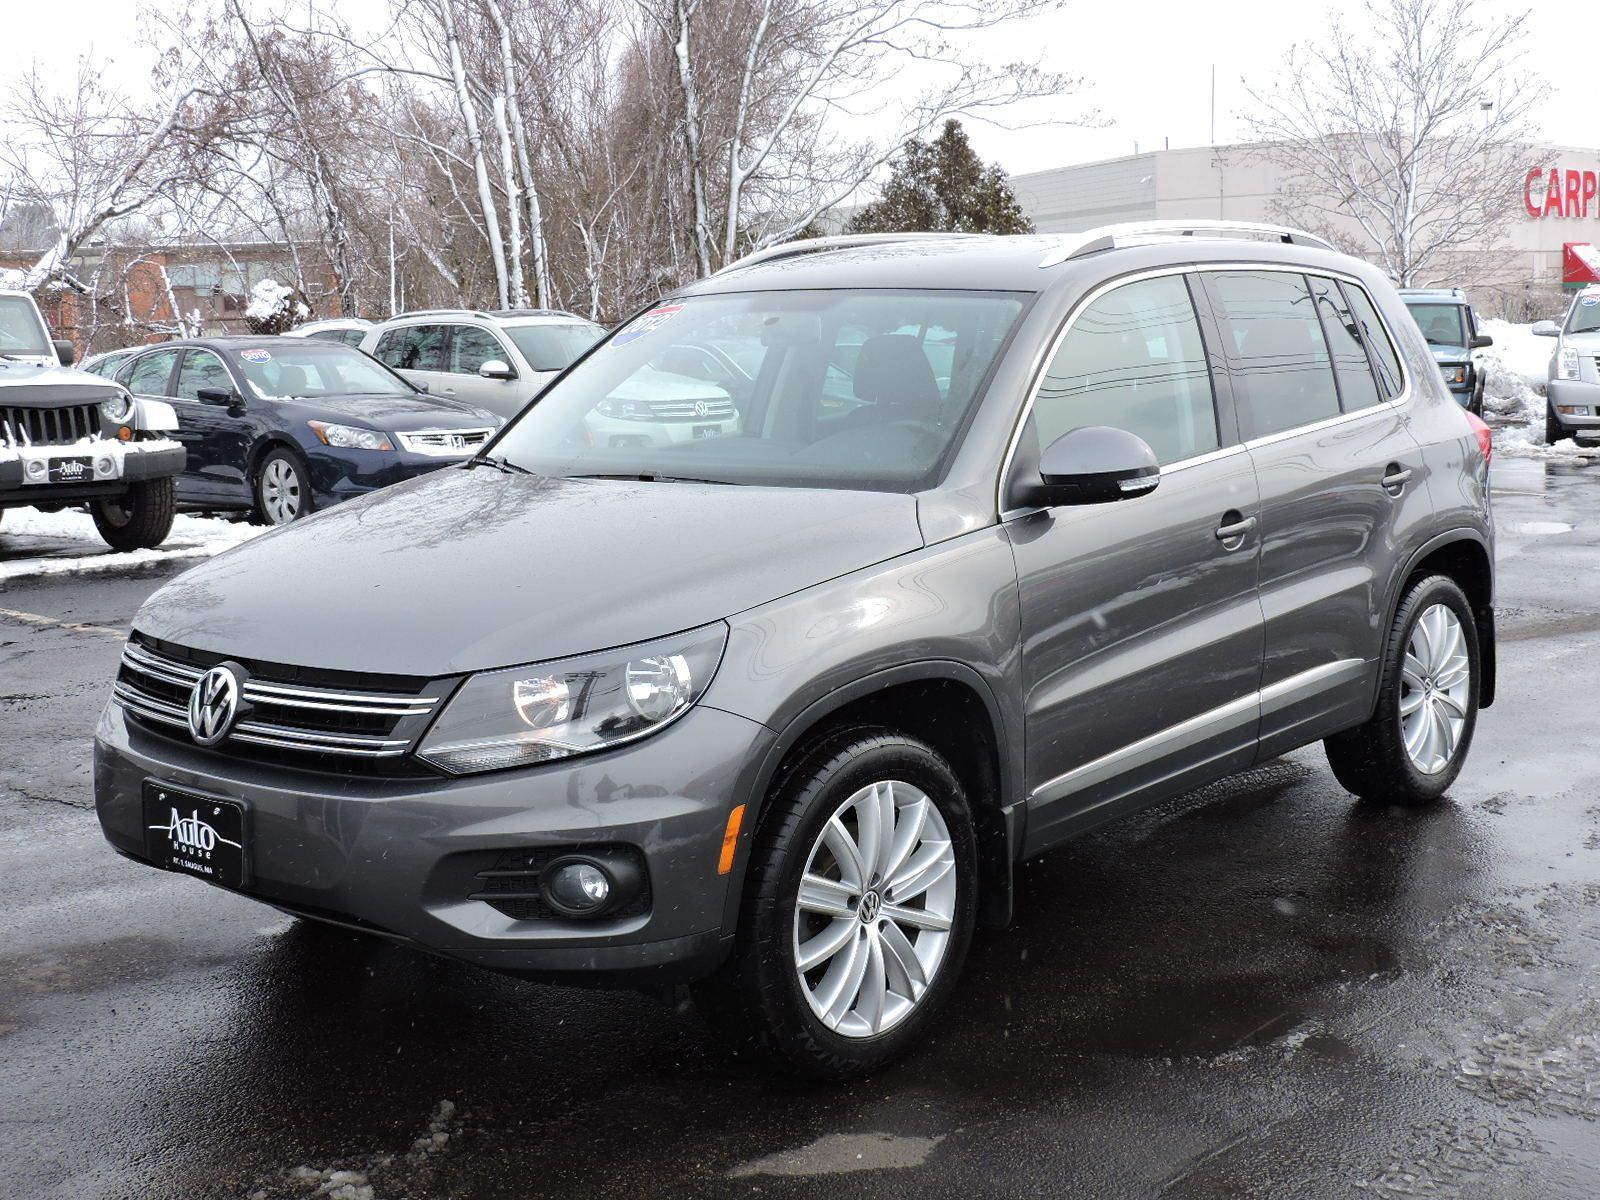 used 2012 volkswagen tiguan se wsunroof nav at auto house usa saugus. Black Bedroom Furniture Sets. Home Design Ideas